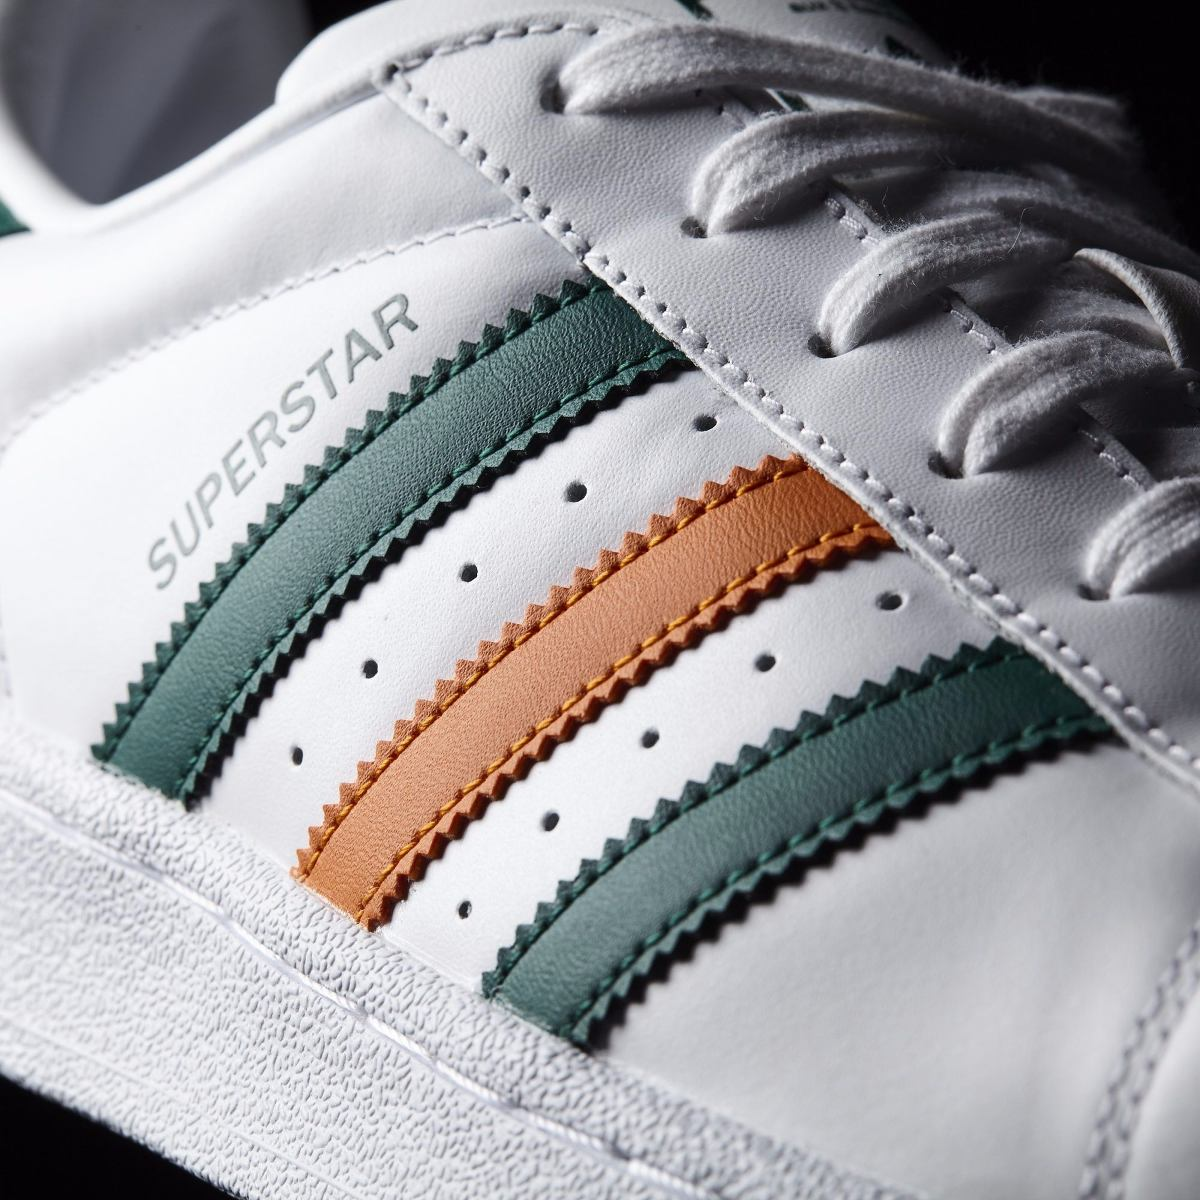 a70b995747 ... switzerland zapatillas adidas superstar original verde naranja. cargando  zoom. e83b9 fc1cb